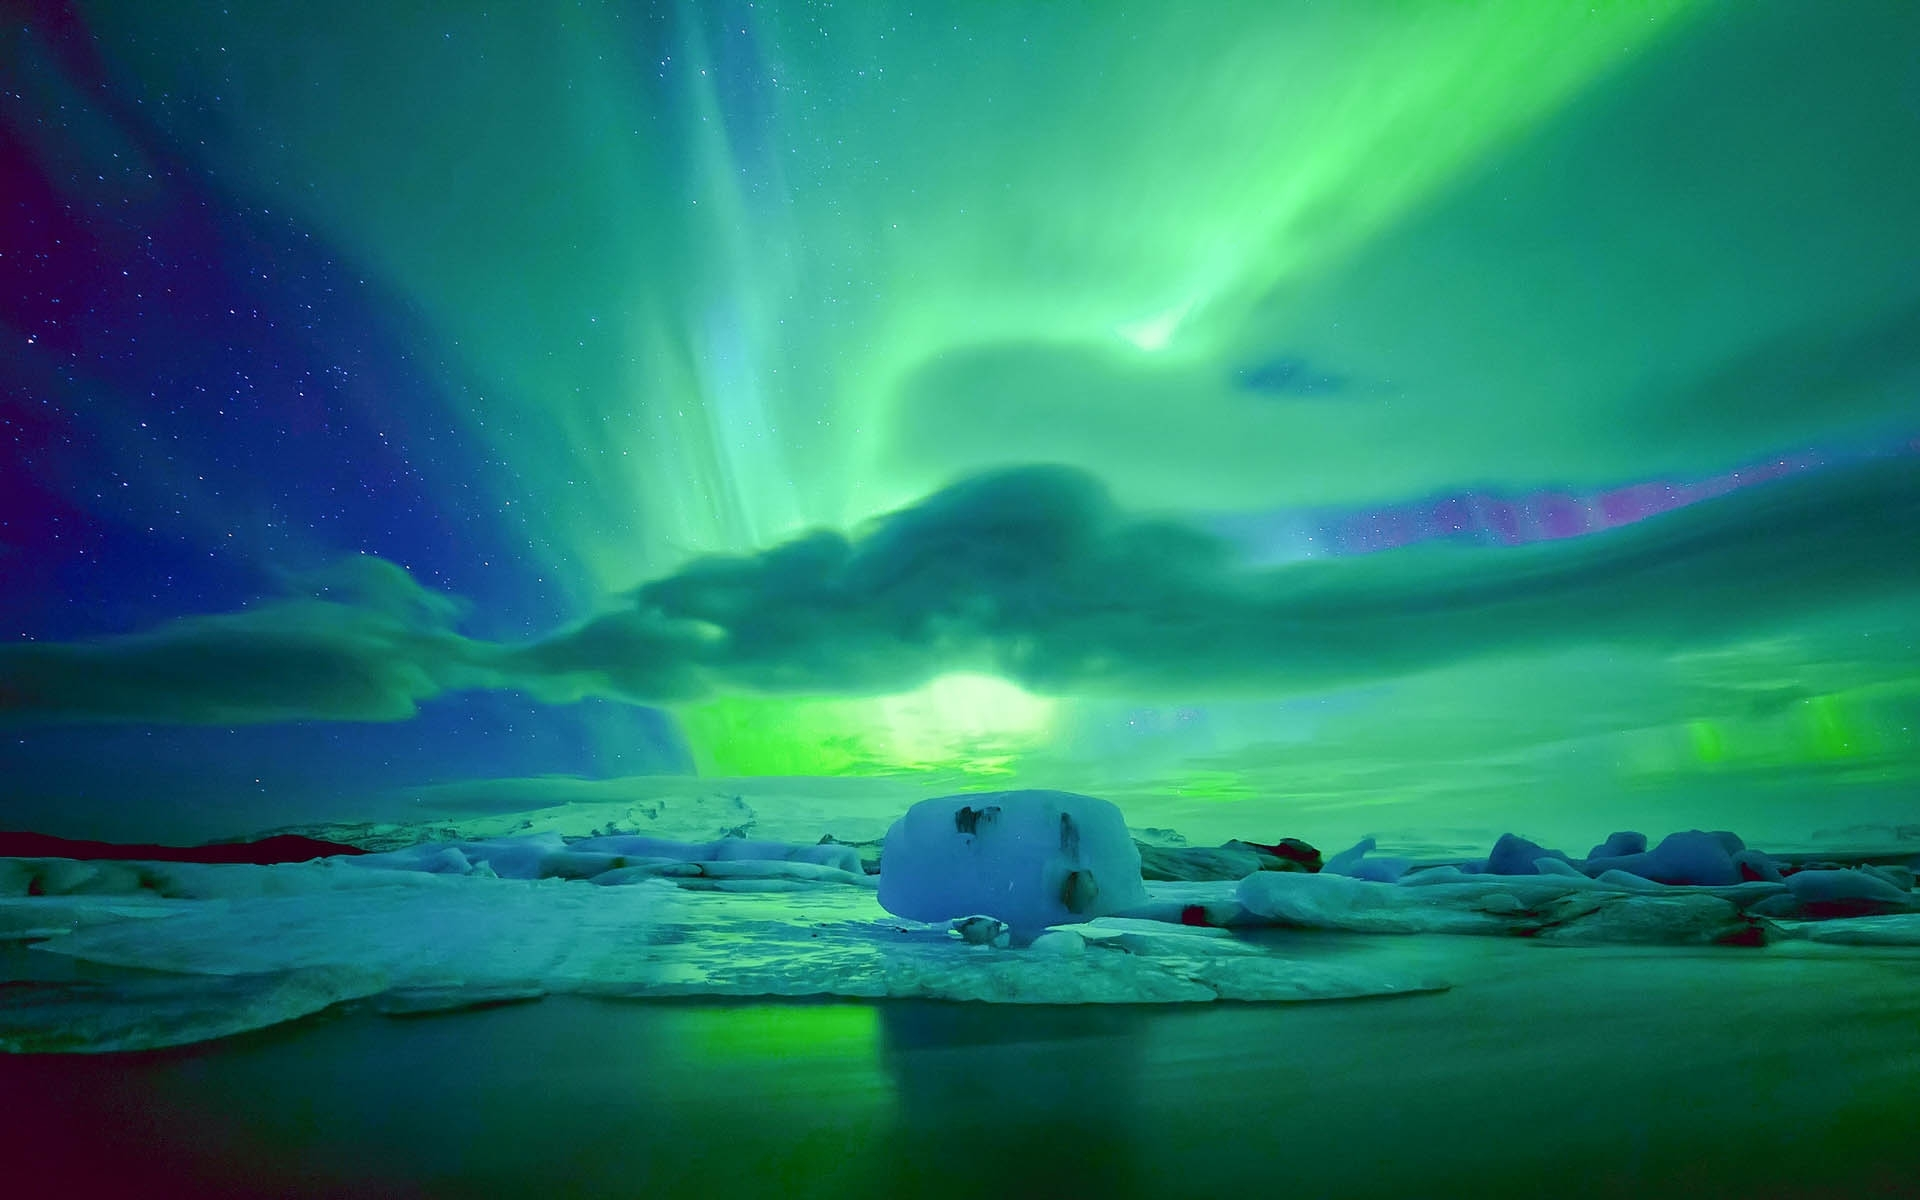 aurora borealis high definition hd wallpapers 2015 - all hd wallpapers